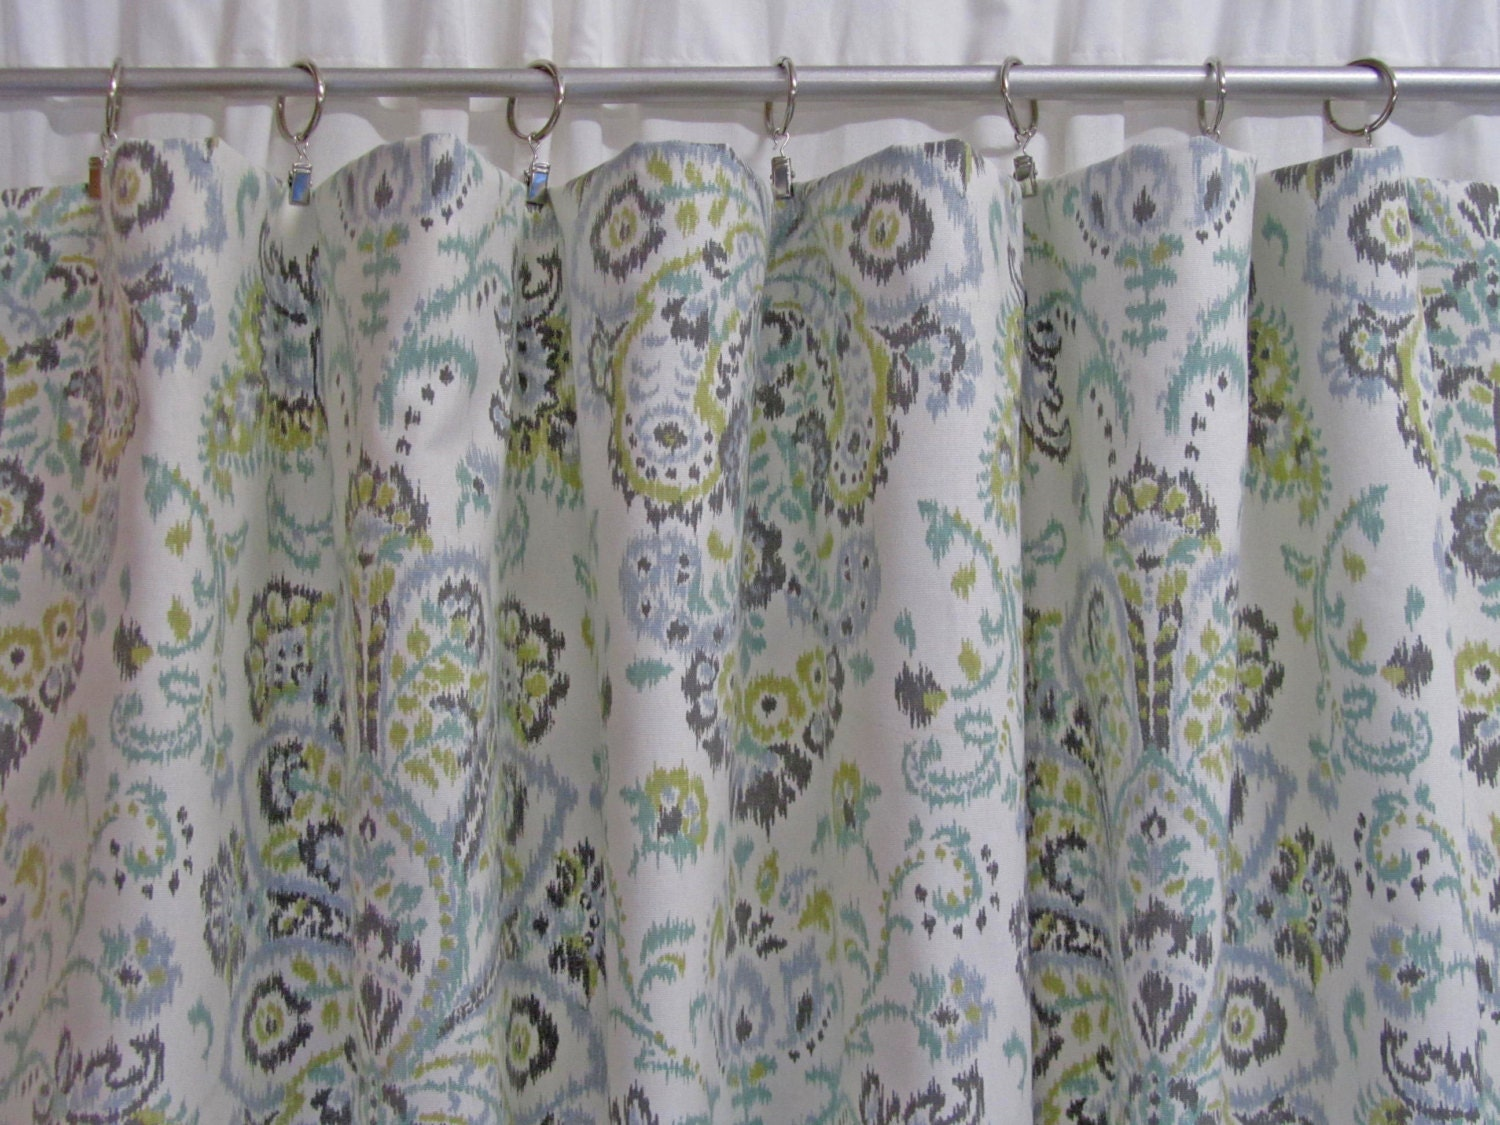 Boho window curtains - Ikat Damask Window Curtains Grey Damask Curtains Gray Green Boho Drapes Modern Curtains Rod Pocket Curtains One Pair Custom 50 W